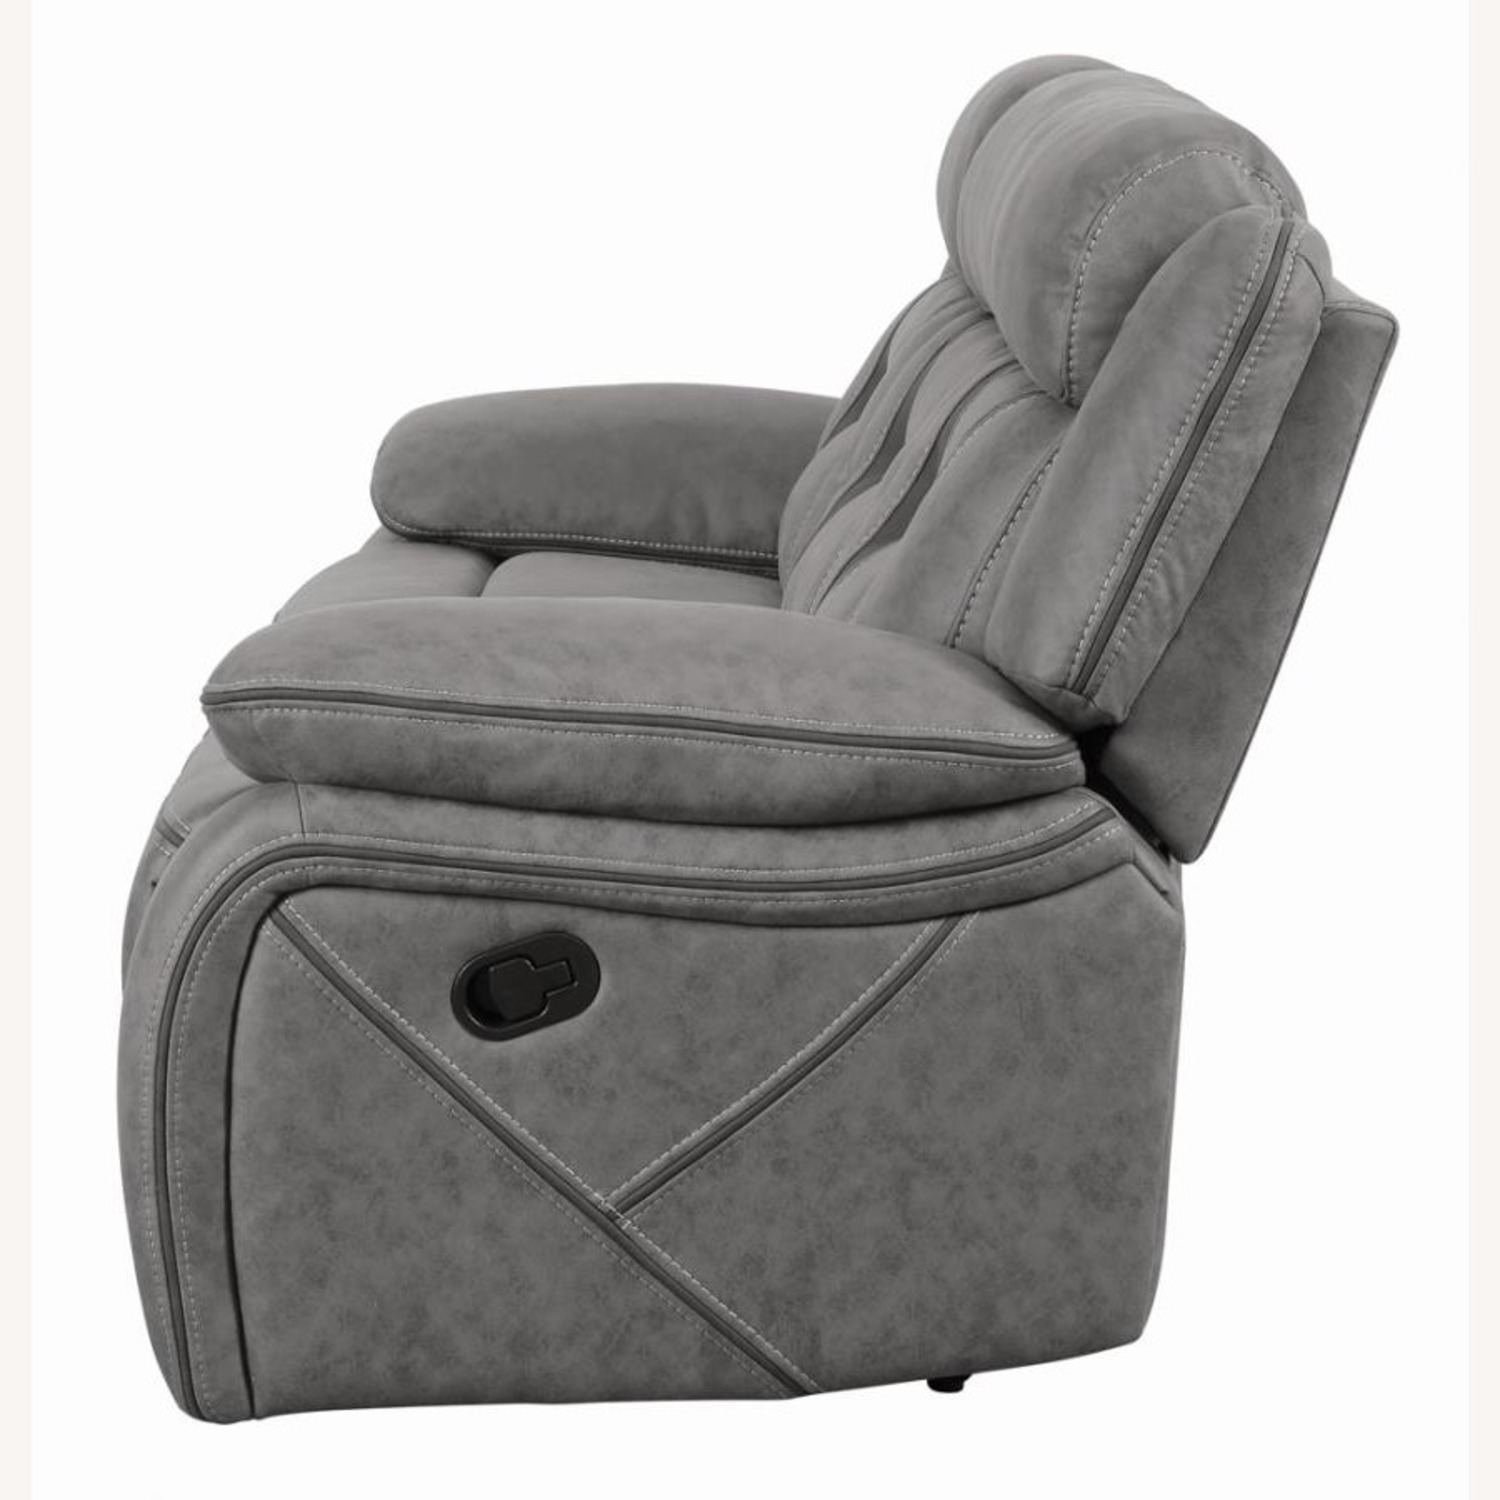 Motion Sofa In Grey Suede W/ Wall Hugger Mechanism - image-2